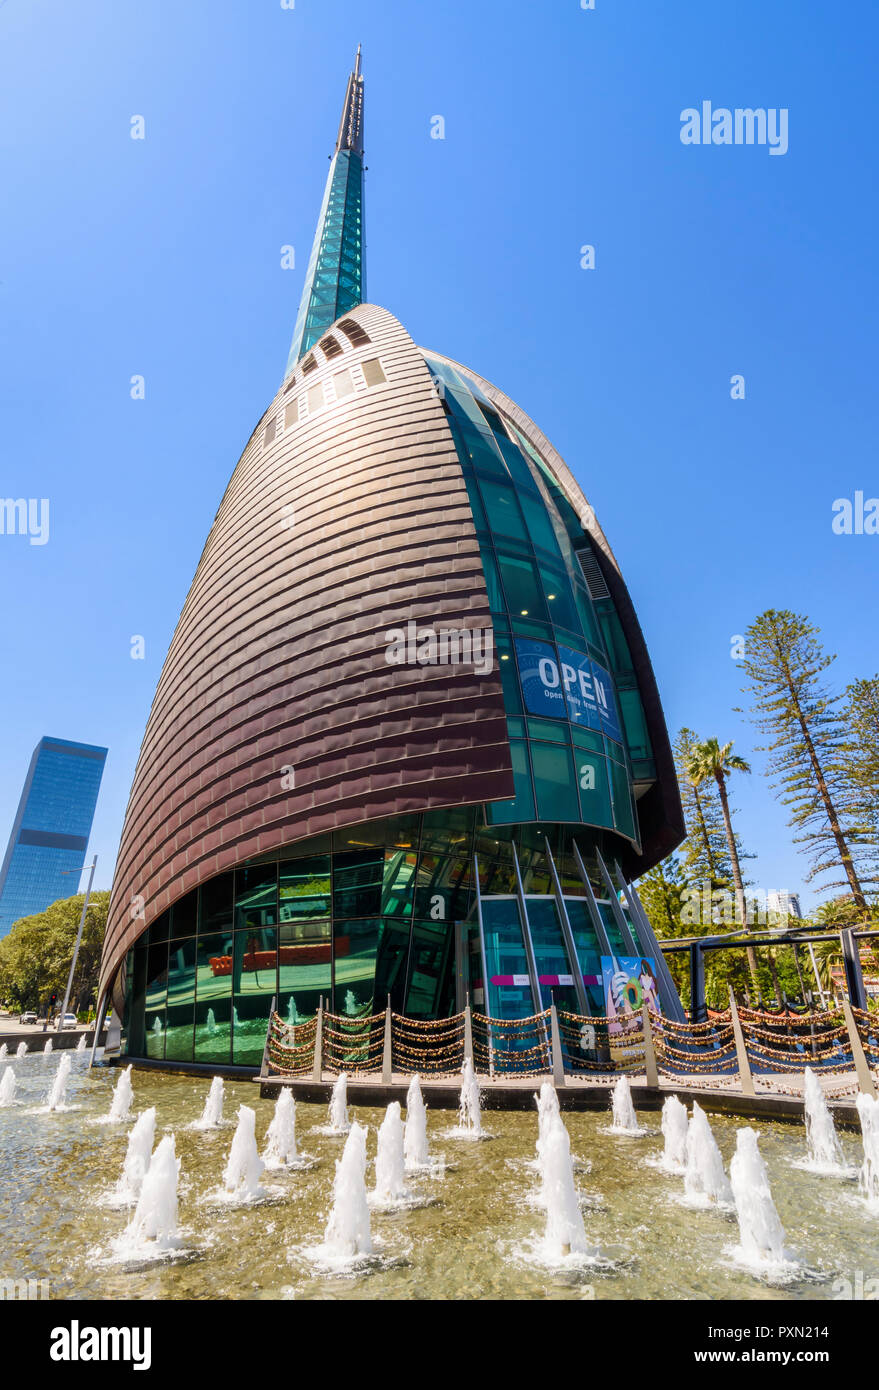 The Swan Bell Tower and forecourt fountains, Barrack Square, Perth, Western Australia - Stock Image